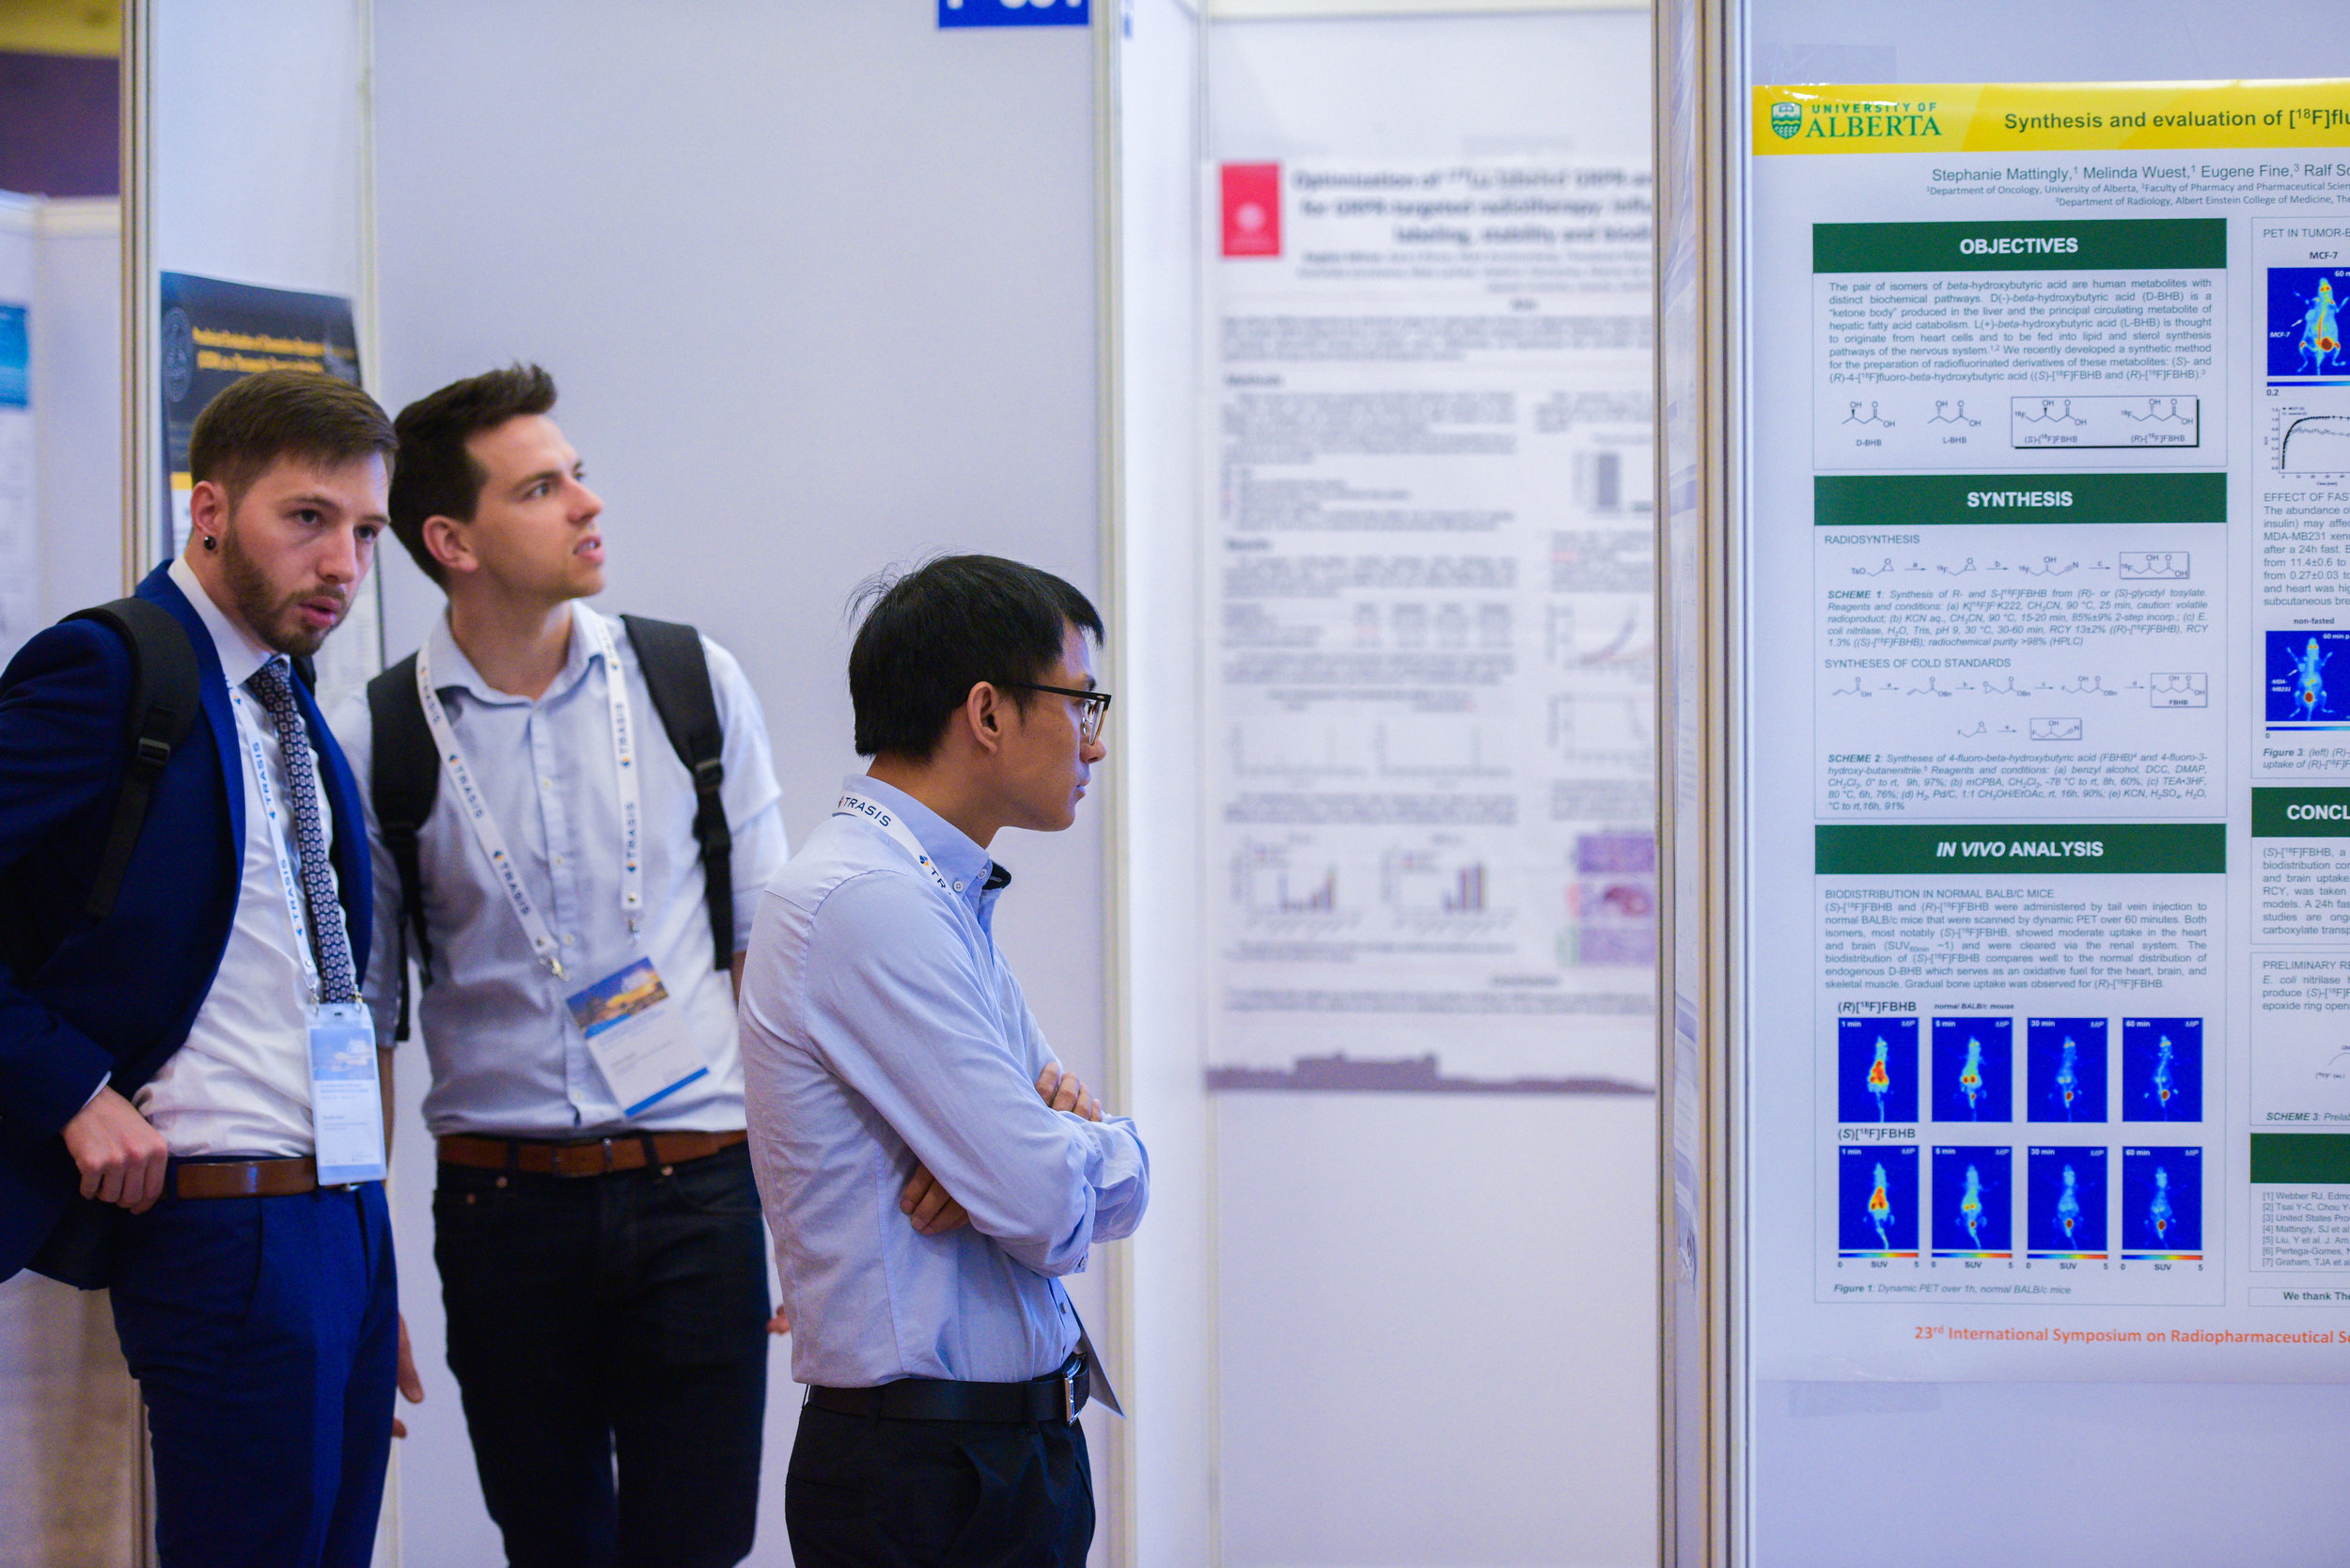 Poster Presentations - To view the entire album, CLICK HERE.